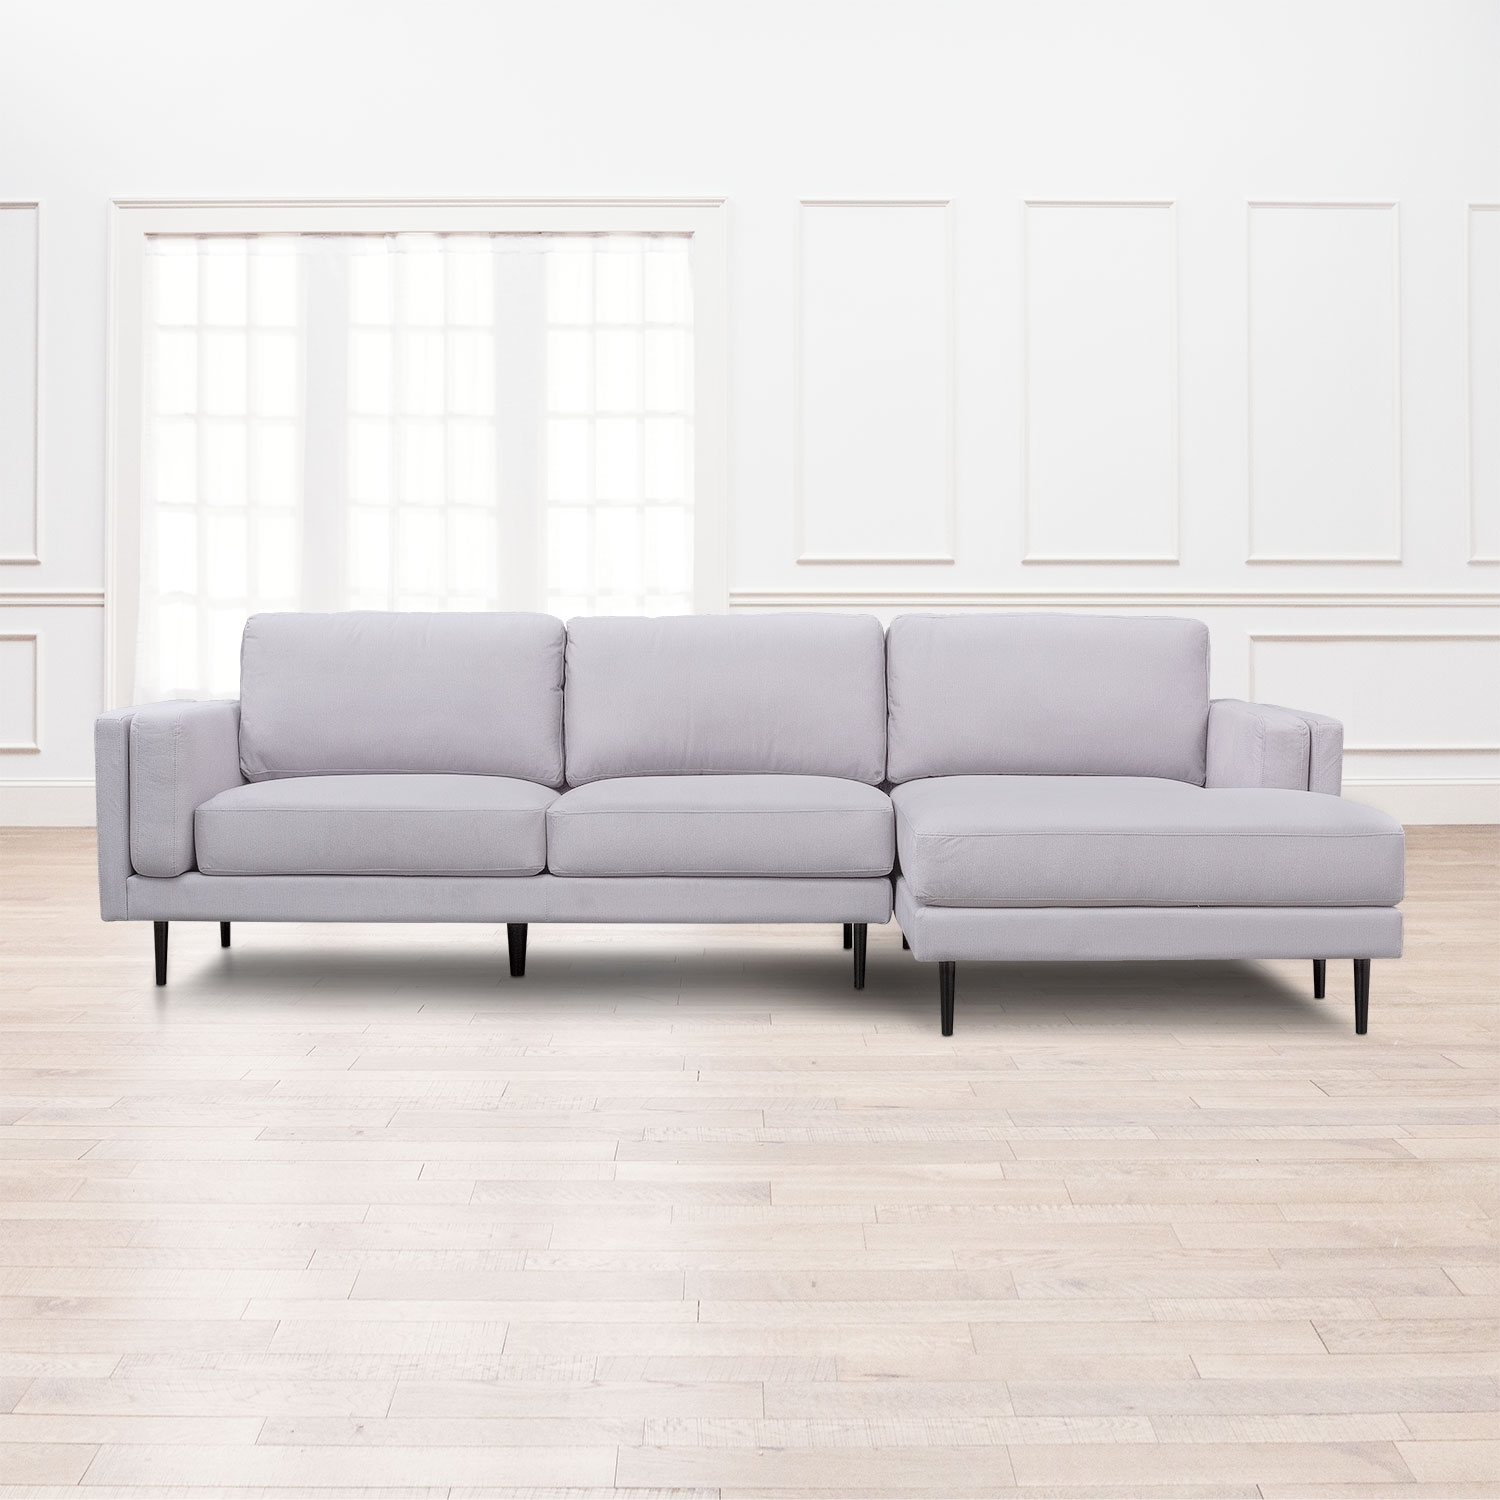 West End 2 Piece Sectional With Right Facing Chaise – Light Gray In Mcdade Graphite 2 Piece Sectionals With Raf Chaise (Image 25 of 25)